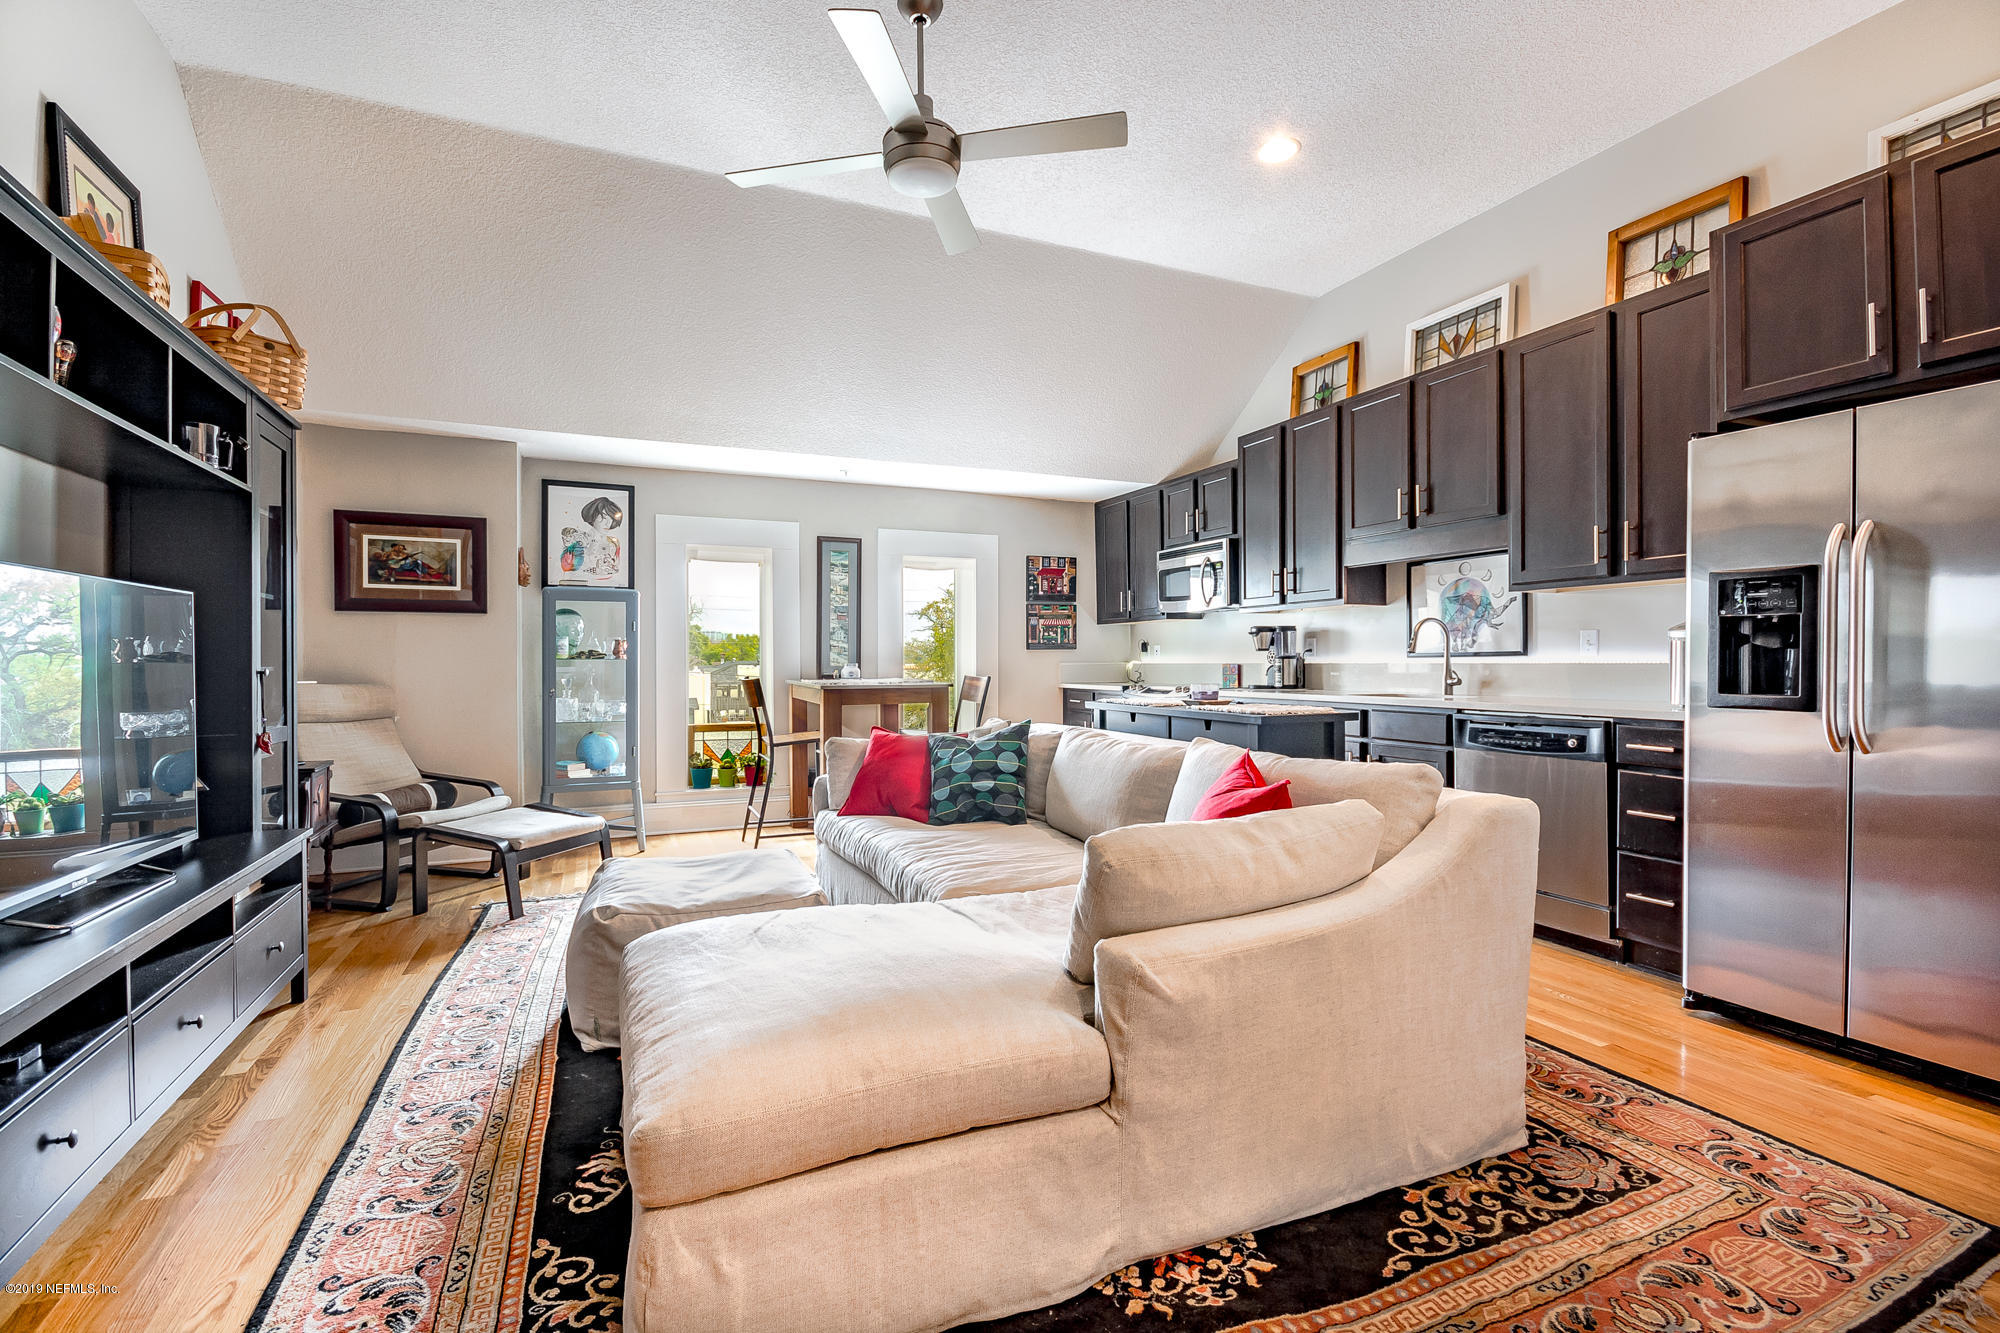 2525 COLLEGE, JACKSONVILLE, FLORIDA 32204, 1 Bedroom Bedrooms, ,1 BathroomBathrooms,Residential - condos/townhomes,For sale,COLLEGE,985560